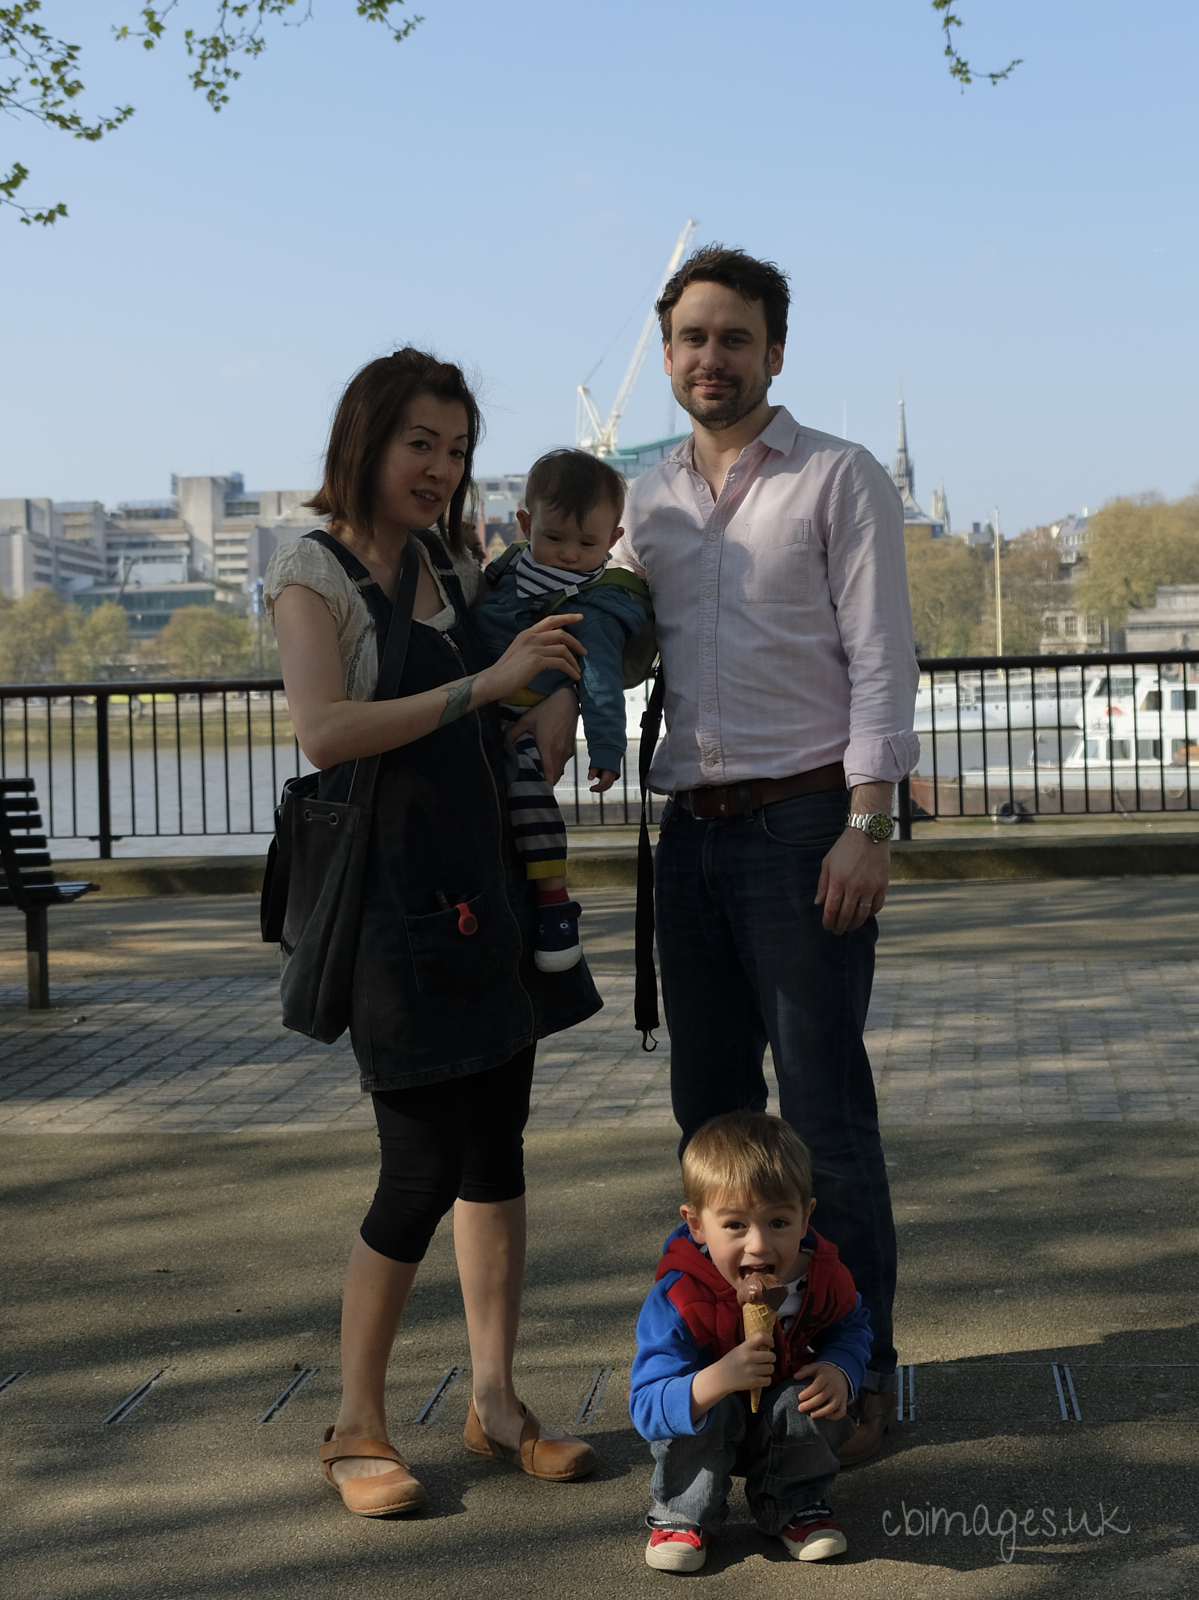 Parents with their two children next to the Thames